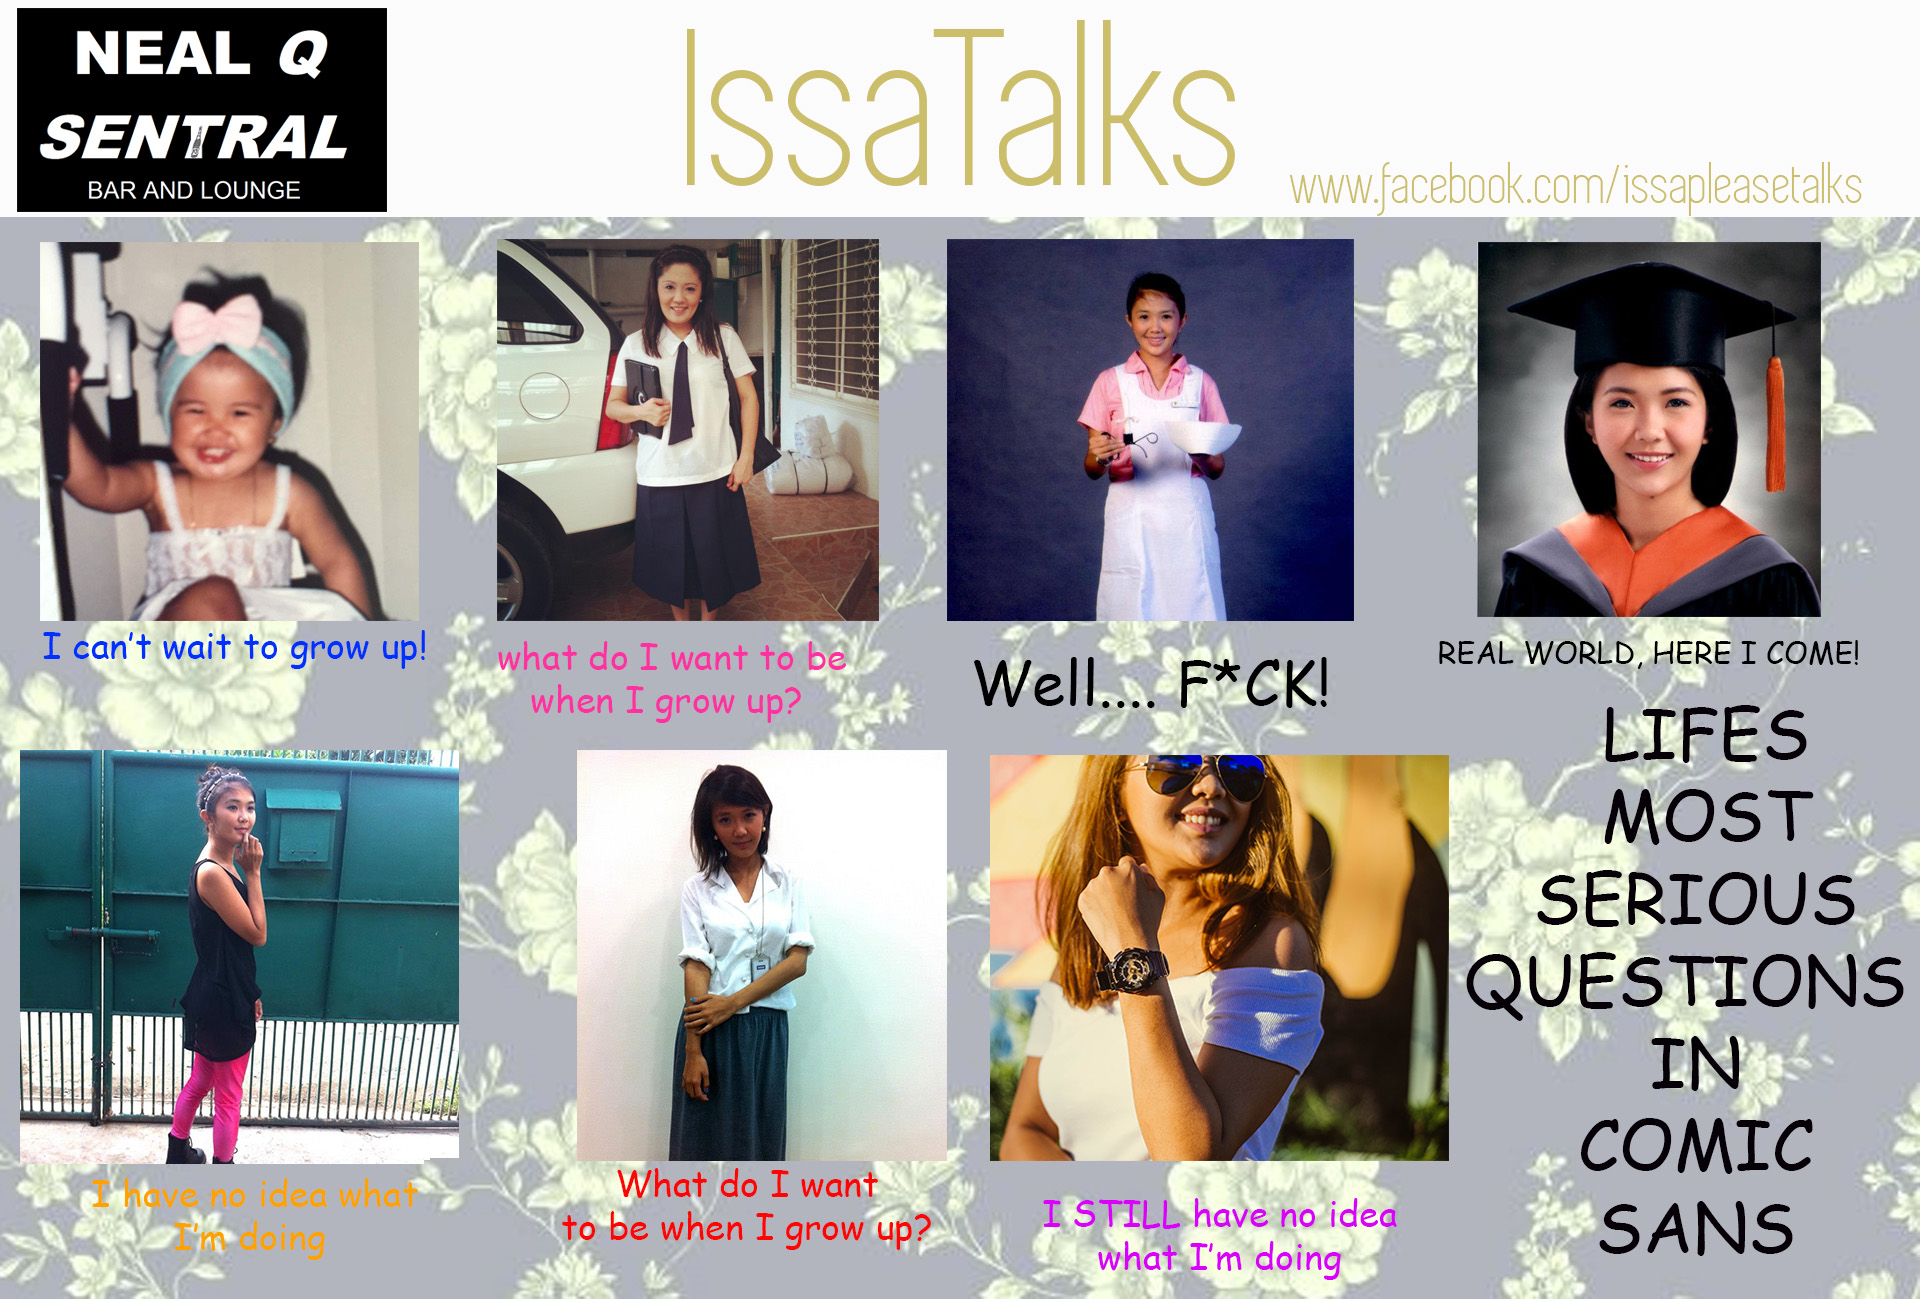 [PODCAST]  IssaTalks Ep 12: What Do I Wanna Be When I Grow Up & Other Mildly Depressing Questions In Life